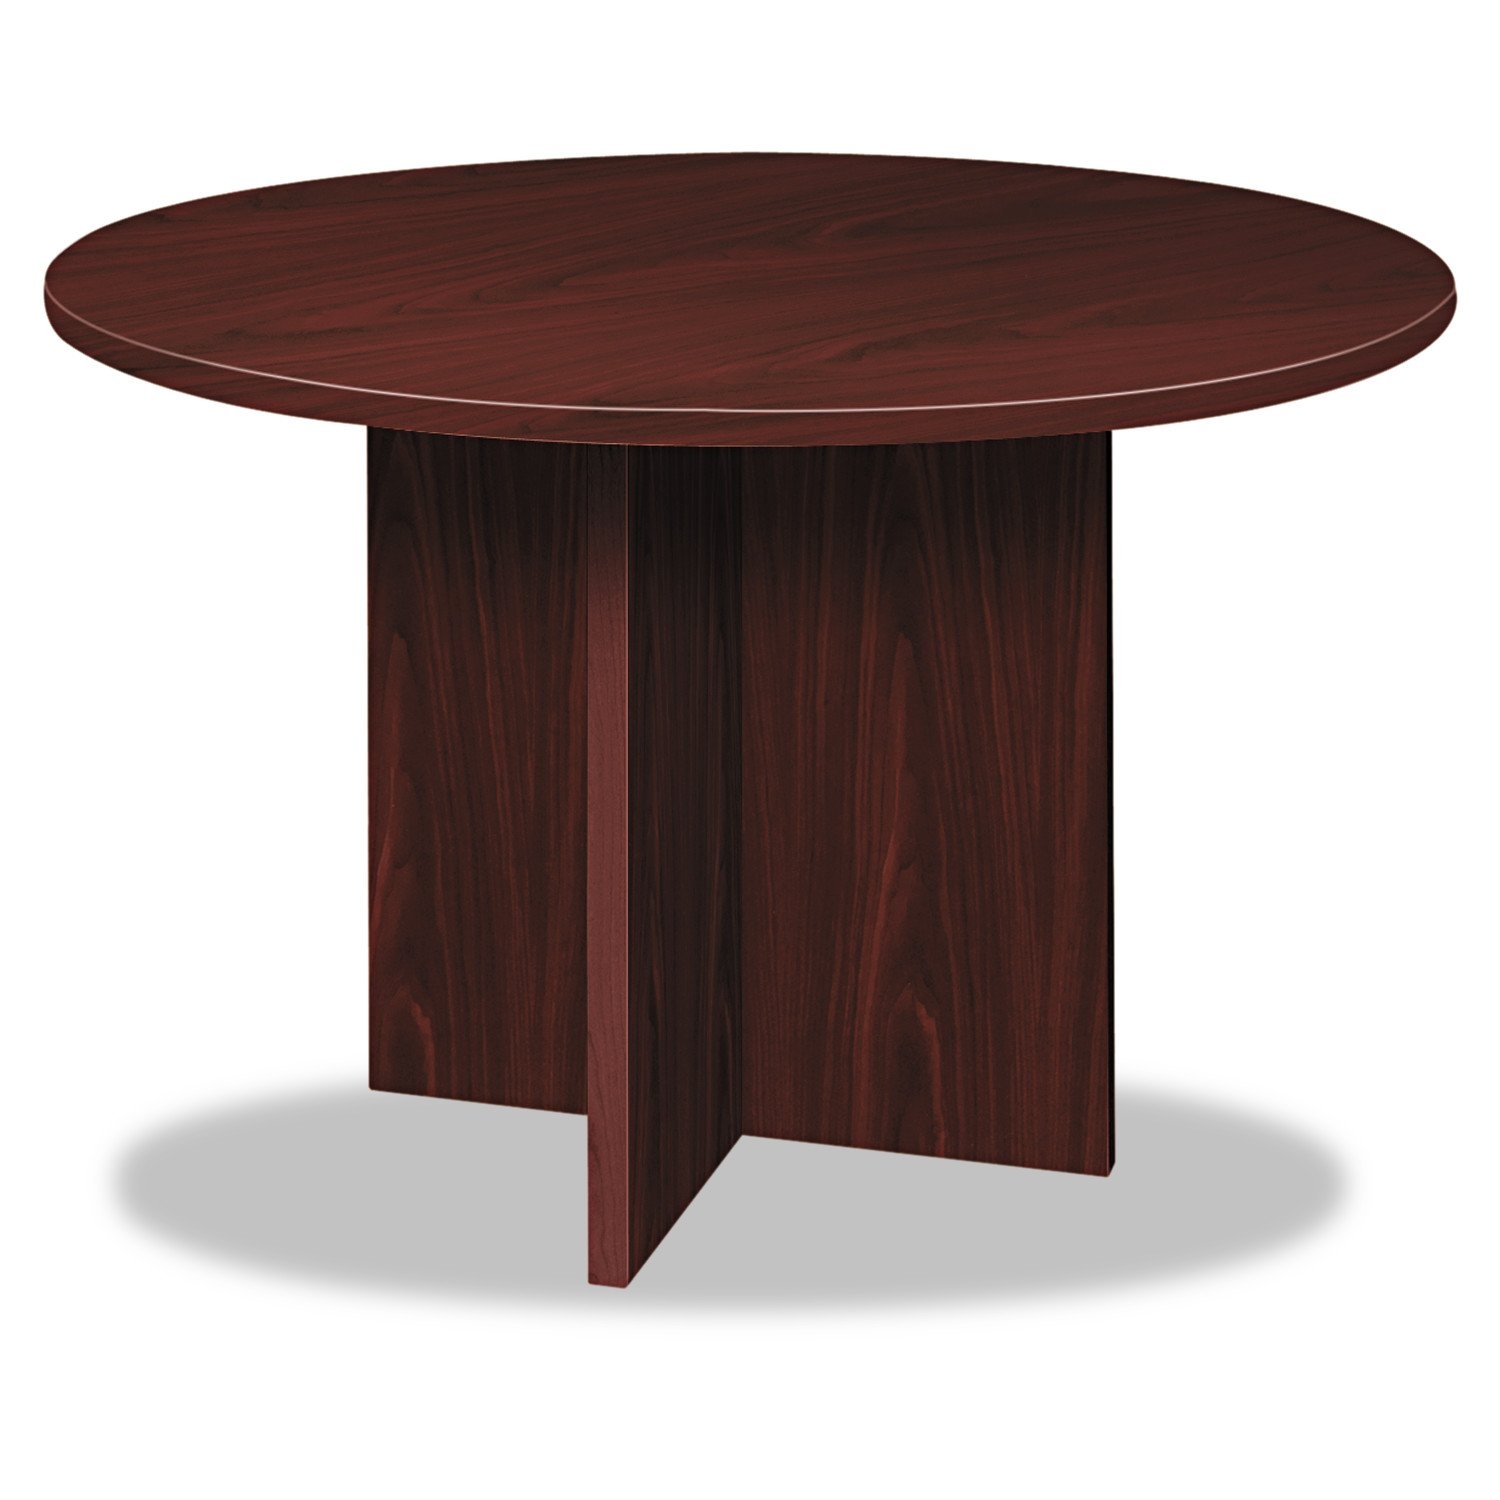 Basyx BLC48DNN BL Laminate Series Round Conference Table, 48 by 29.5-Inch, Mahogany by Basyx